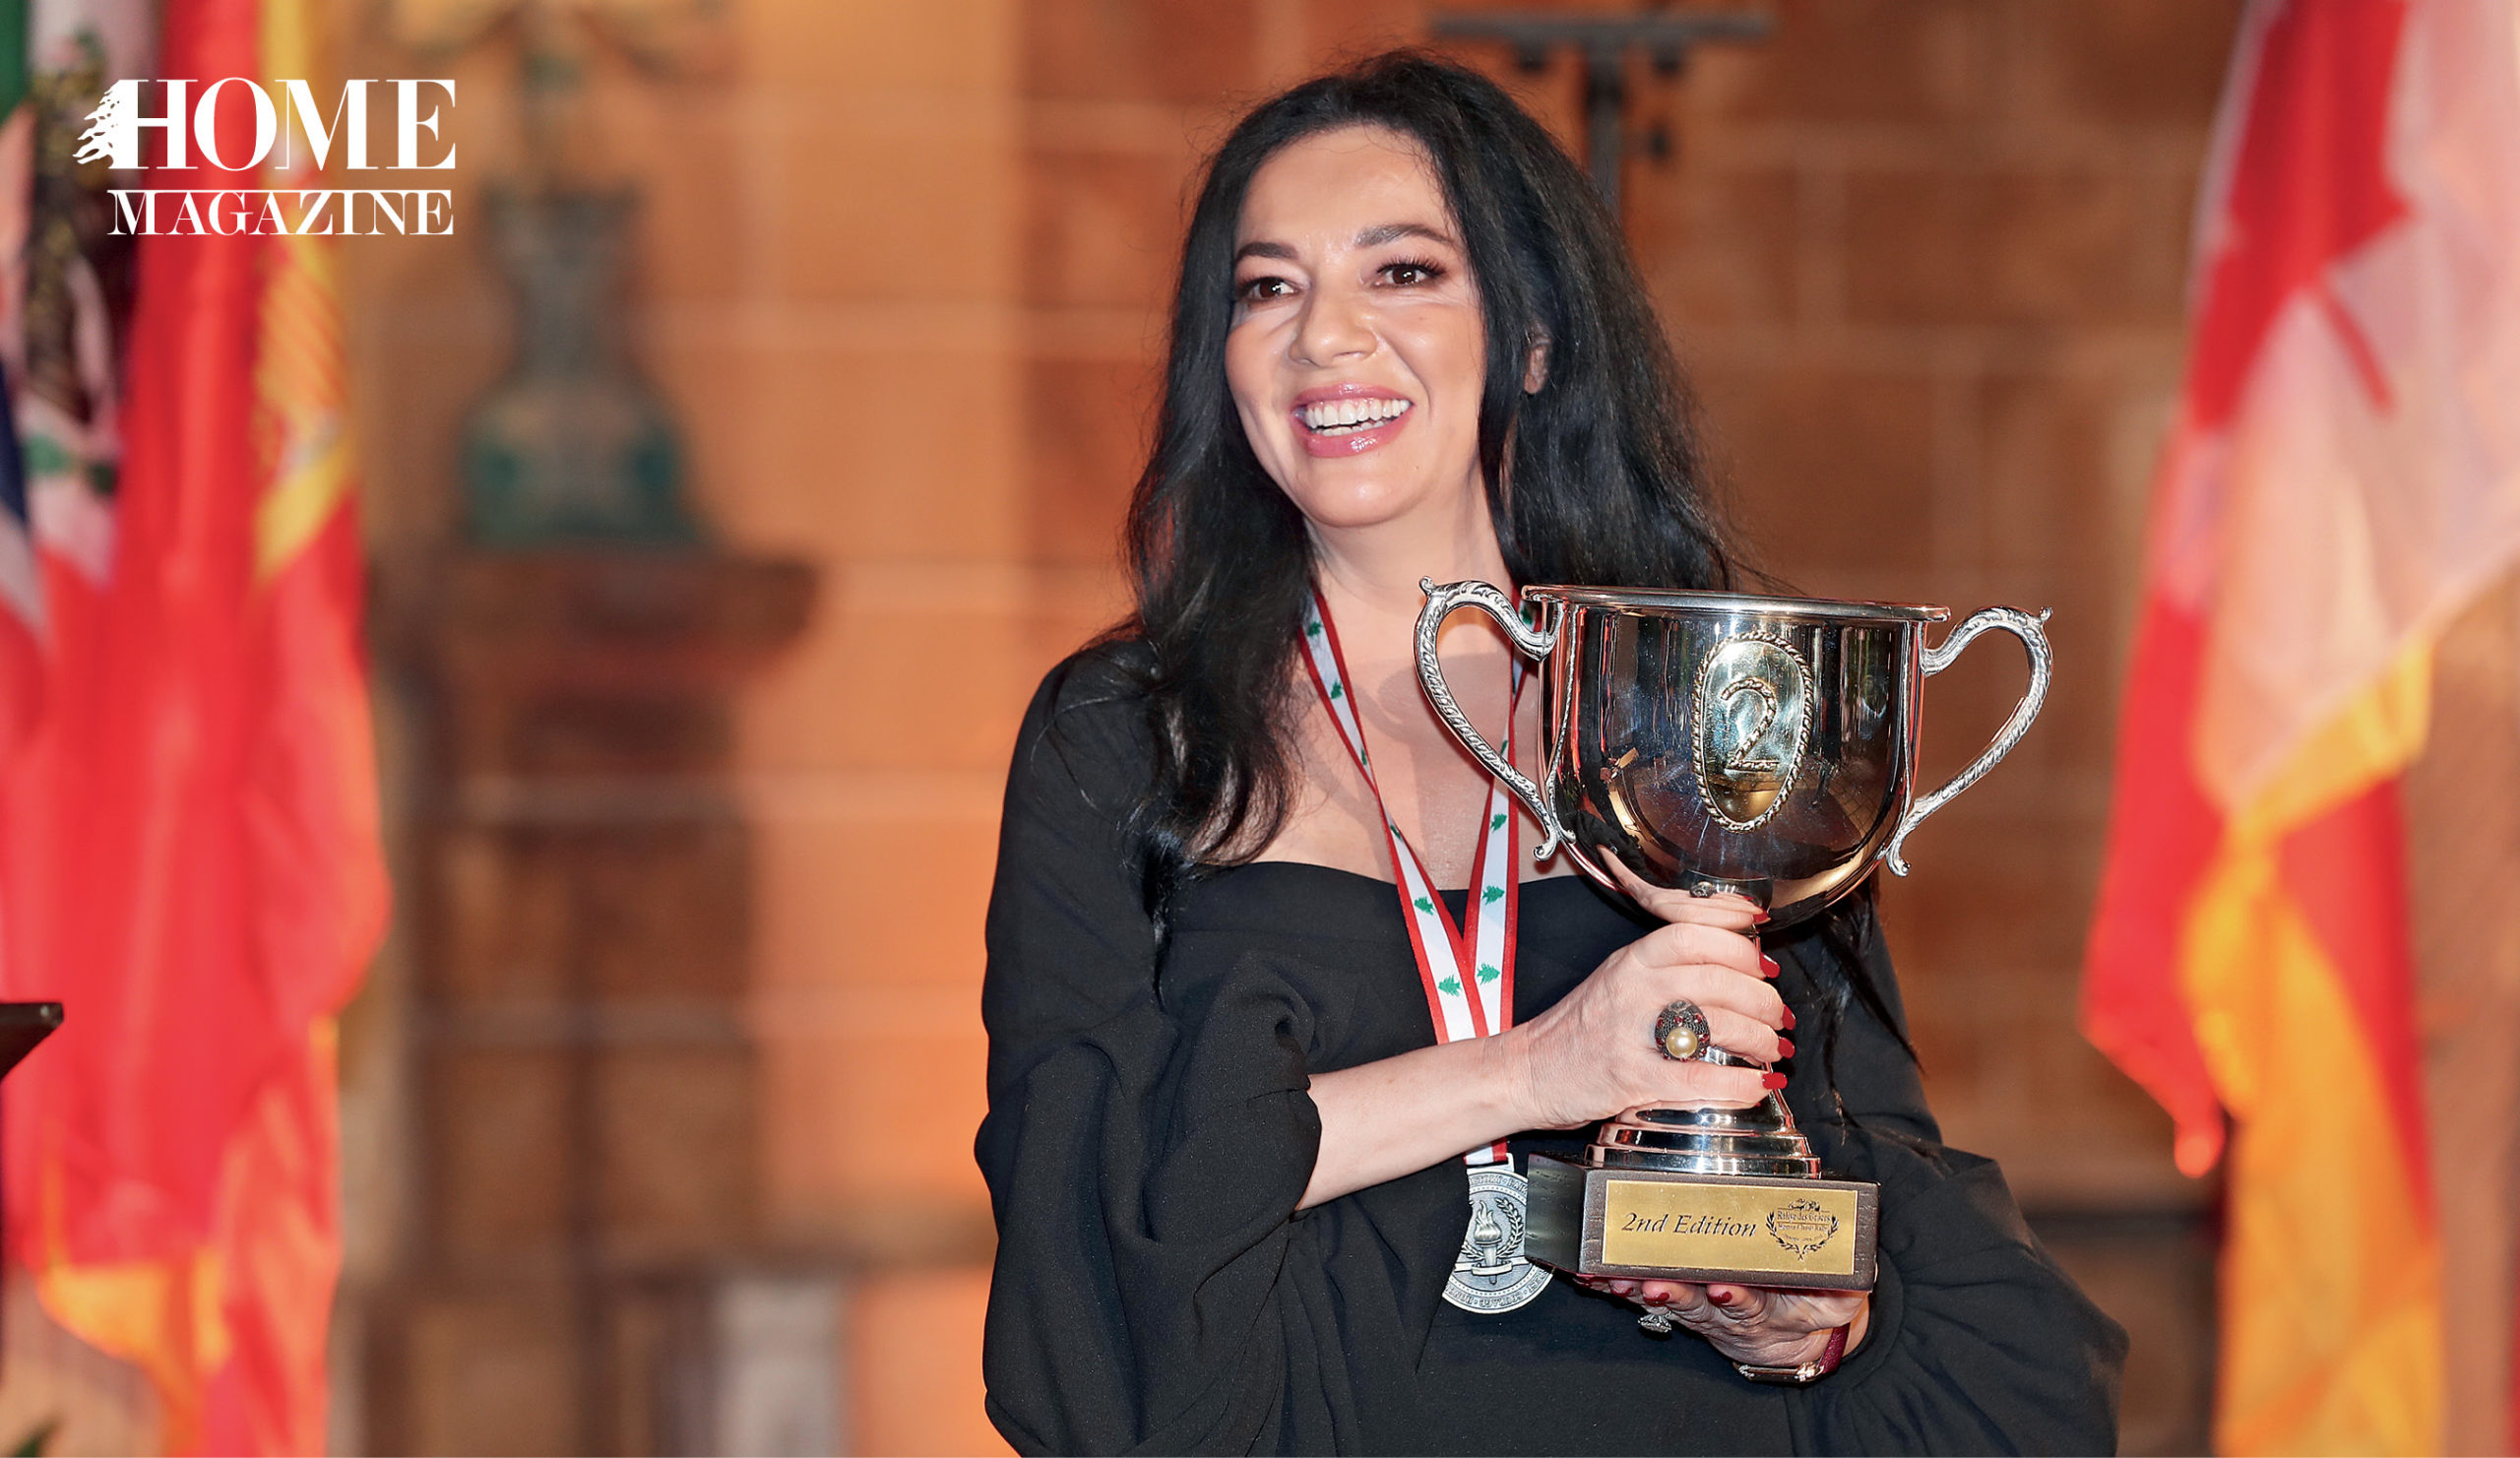 A woman with black hair and in a black dress holding a trophy and a medal around her neck